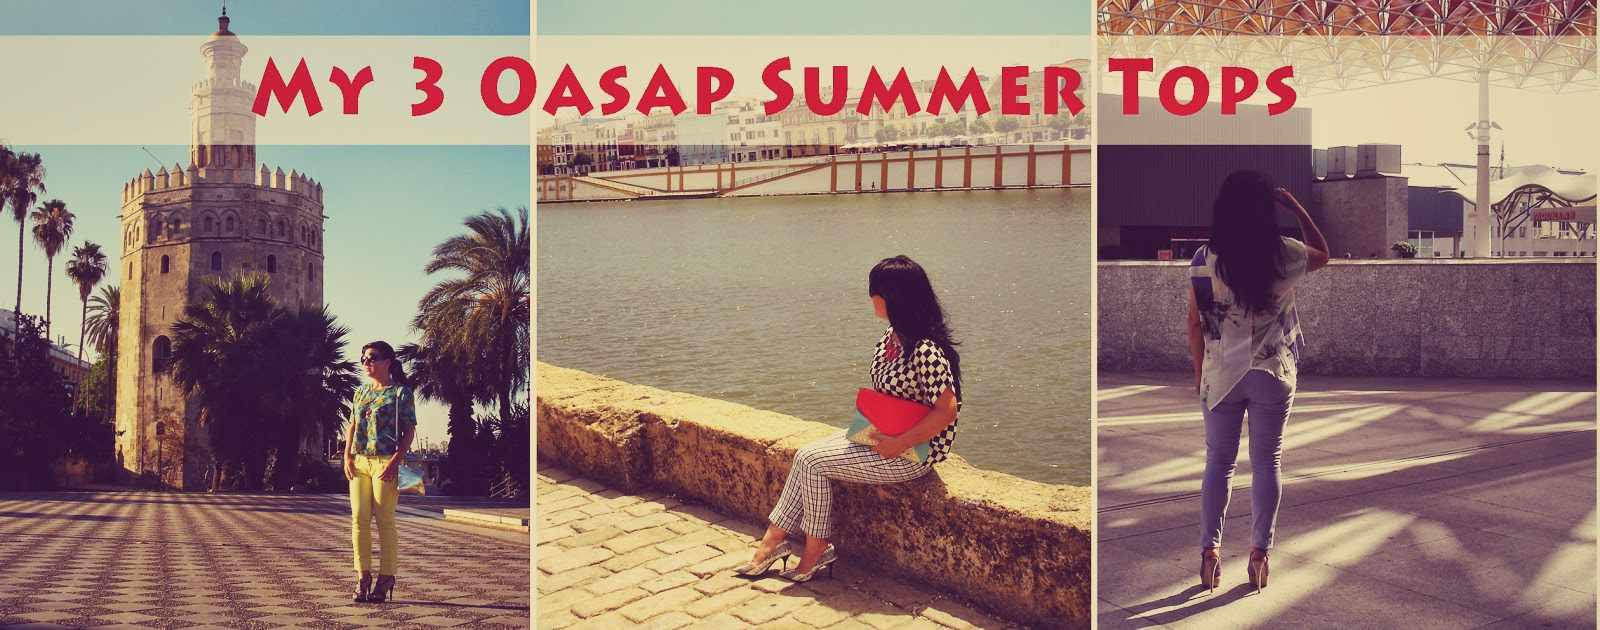 My+3+Oasap+Summer+Tops